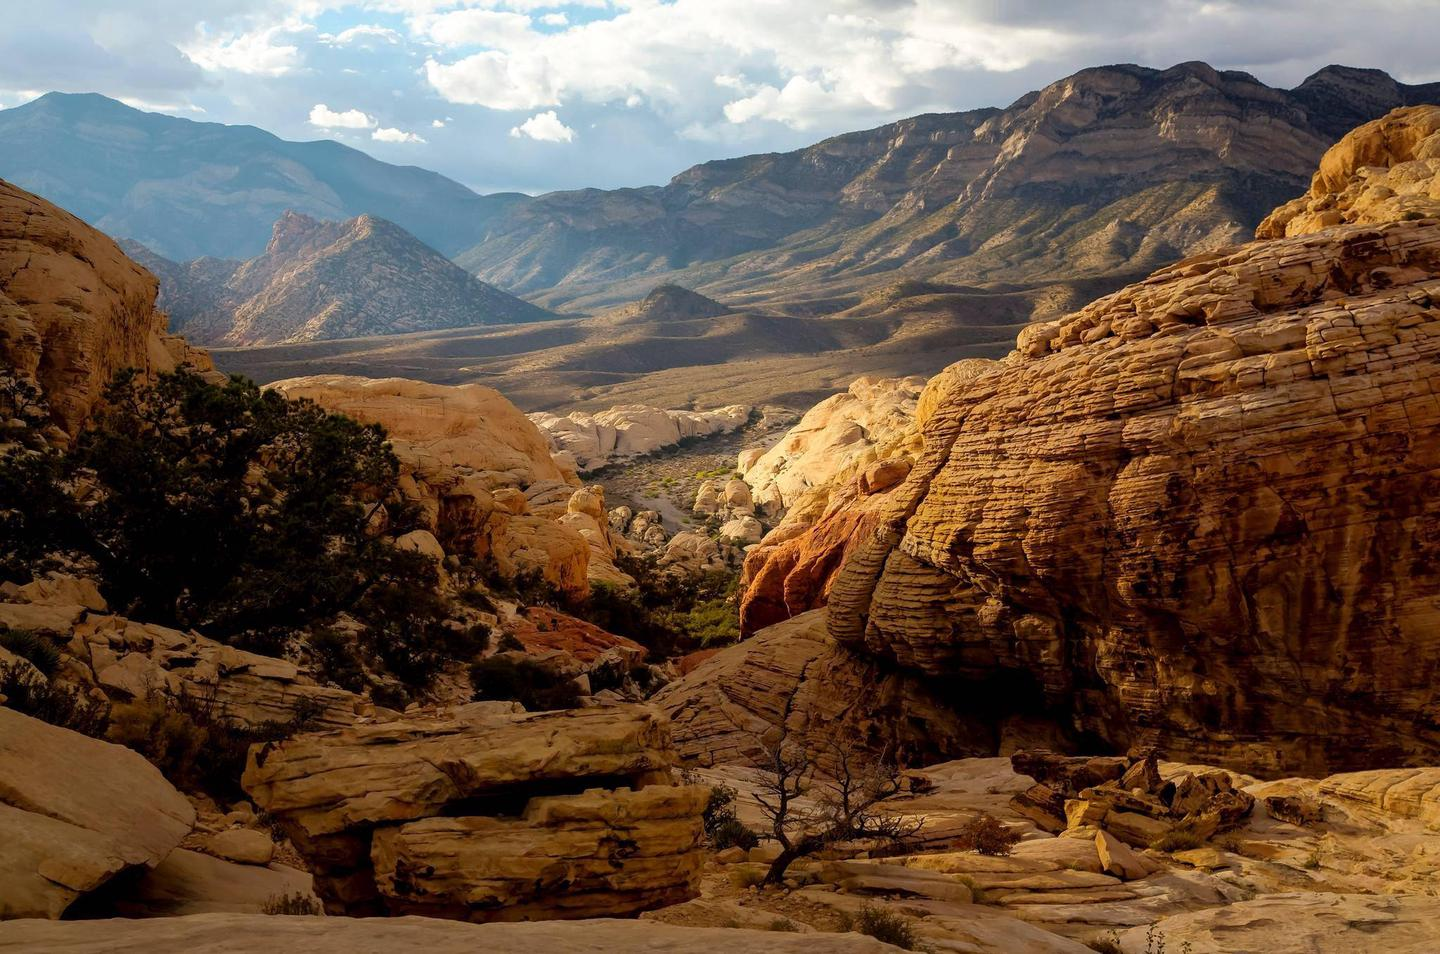 Red Rock Canyon's red sandstone landscape. Red Rock Canyon's iconic red sandstone.